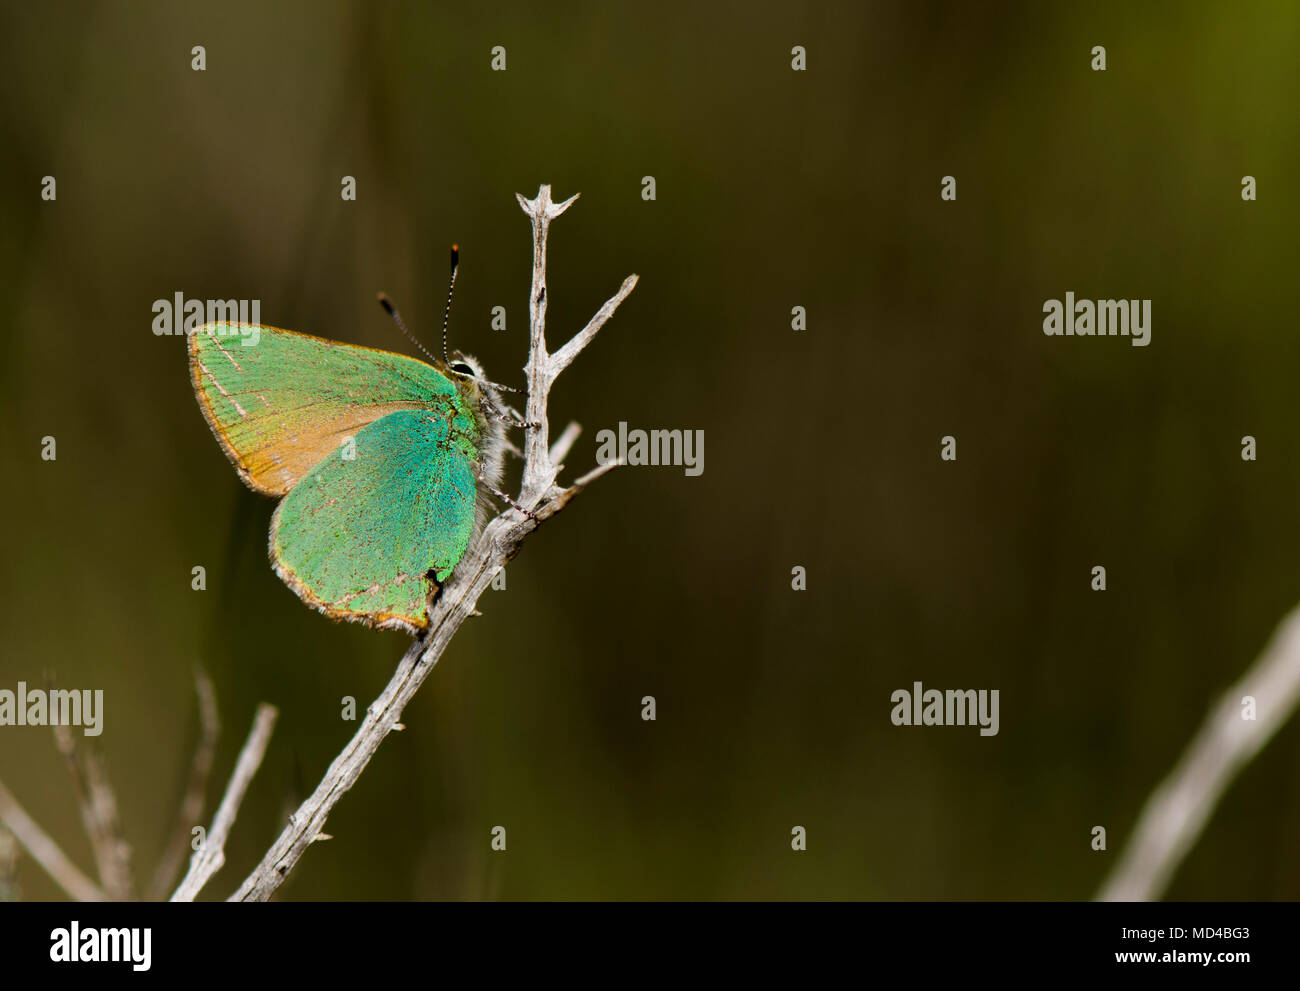 Green hairstreak, Callophrys rubi, butterfly resting, Andalusia, Spain. Stock Photo